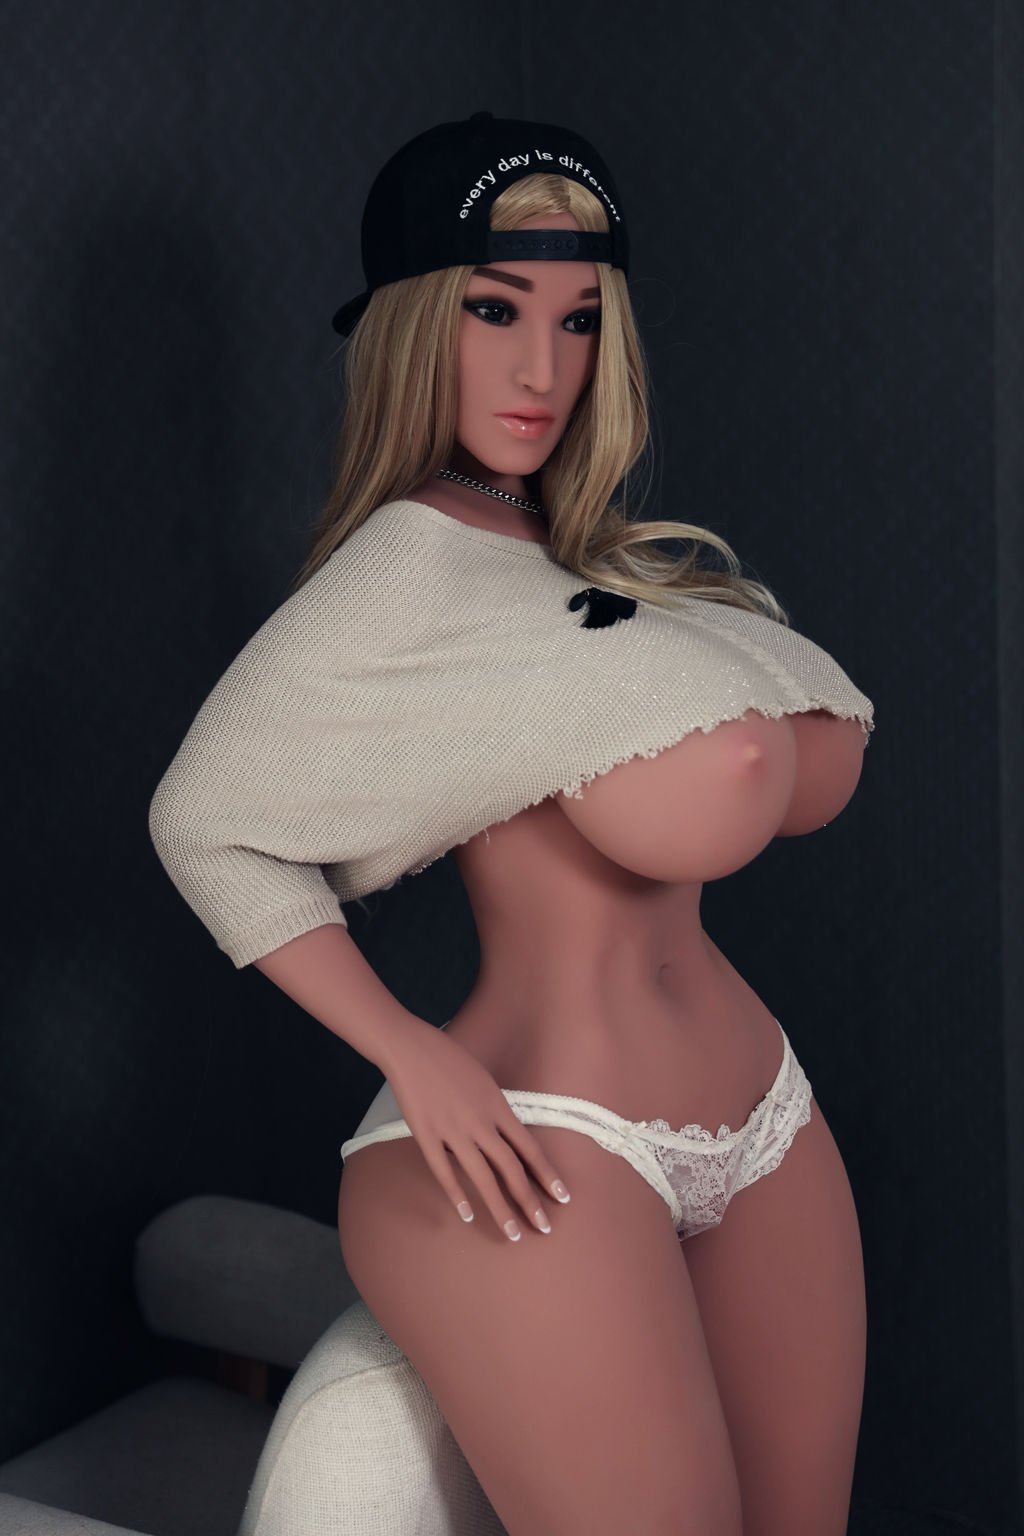 Huge tits sex doll